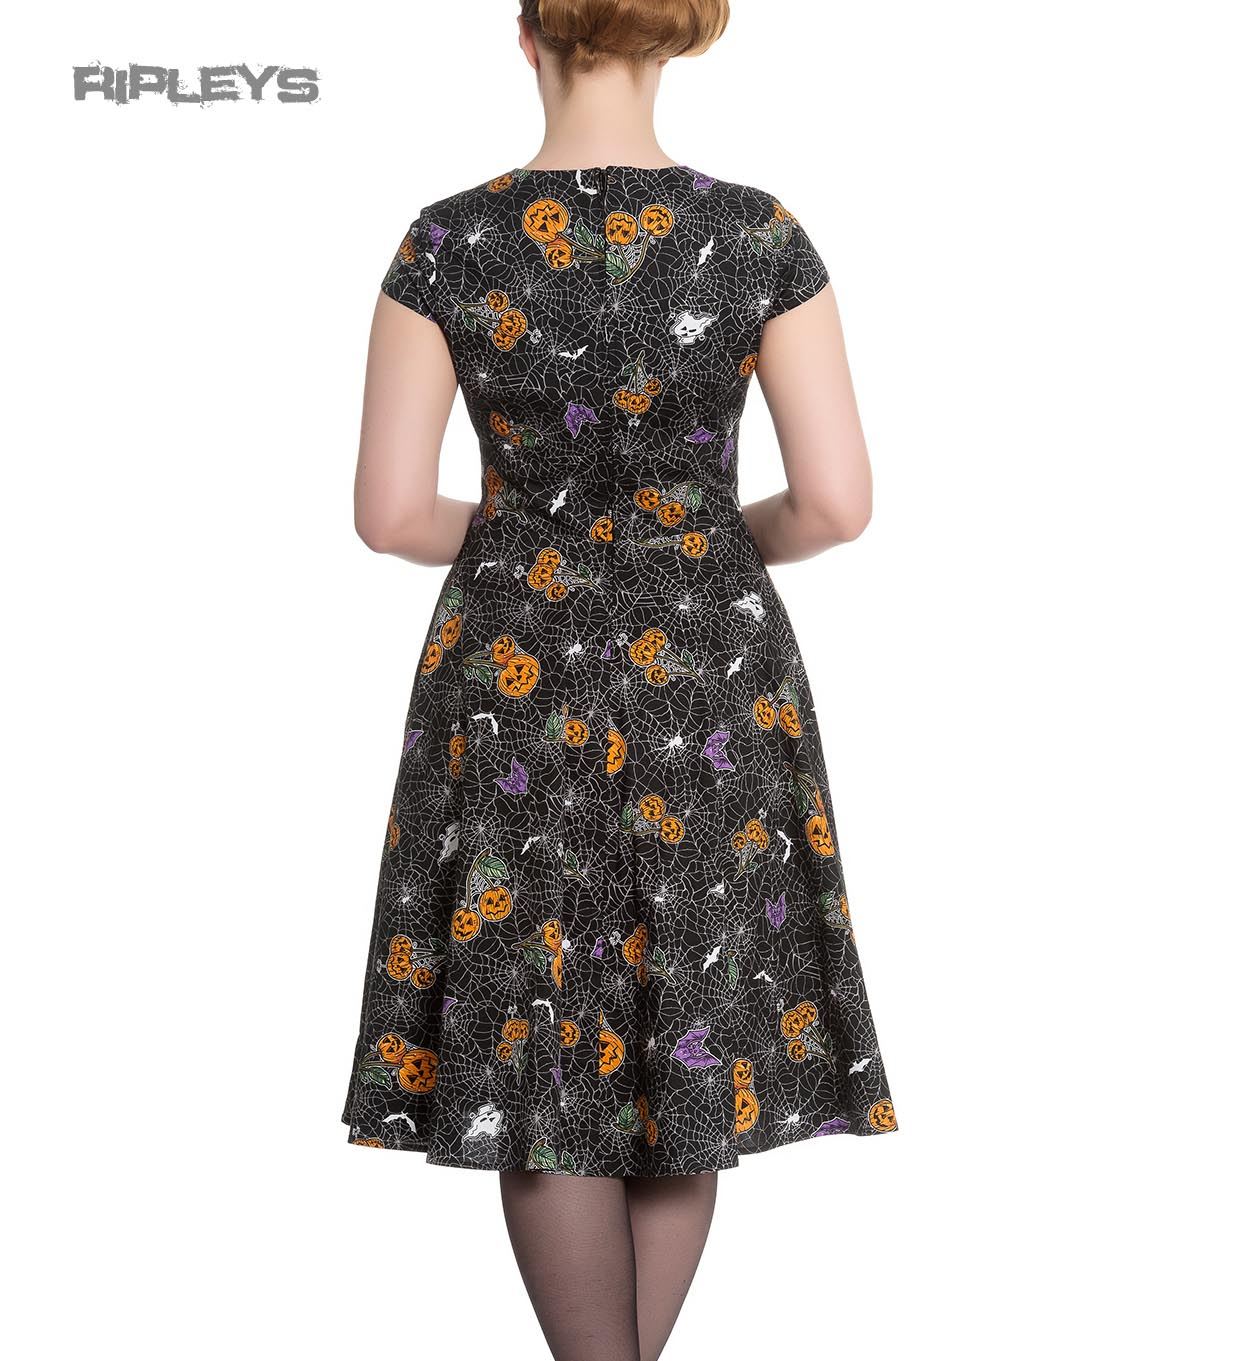 Hell-Bunny-Black-Pinup-50s-Goth-Webs-Dress-HARLOW-Halloween-All-Sizes thumbnail 24